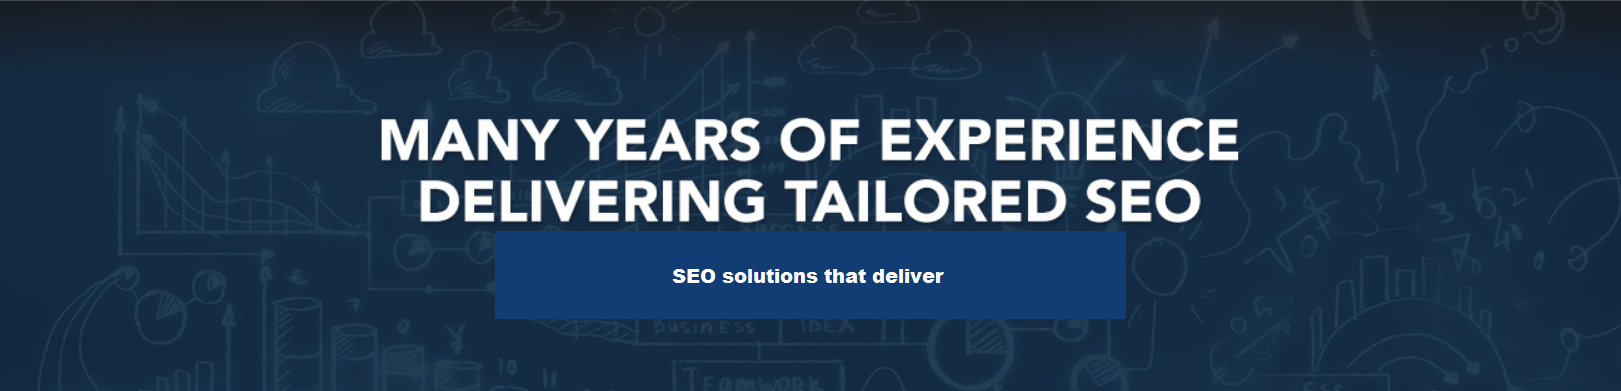 SEO solutions that work by Smarter Search - SEO in London and nationally